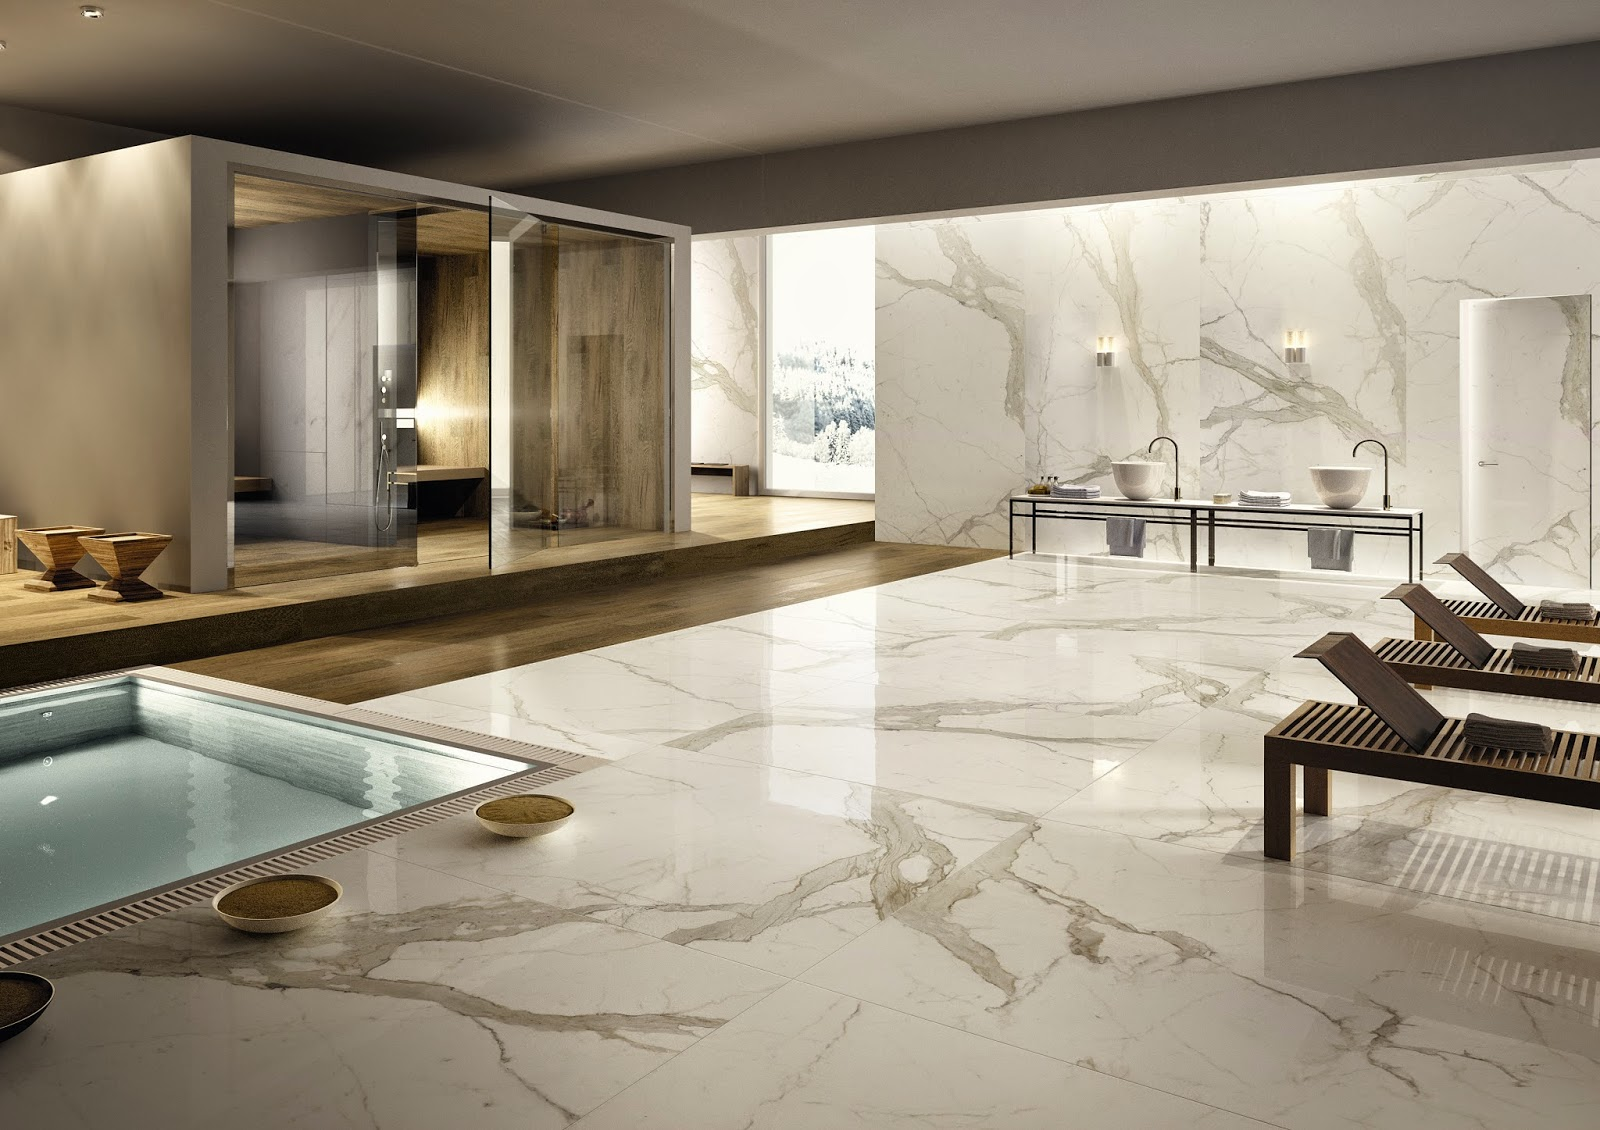 amazing interior design with calacatta marble flooring and tile wall mount and hottubs beautiful calacatta marble for interior design calcutta gold marble marble countertops cost calcutta with rega